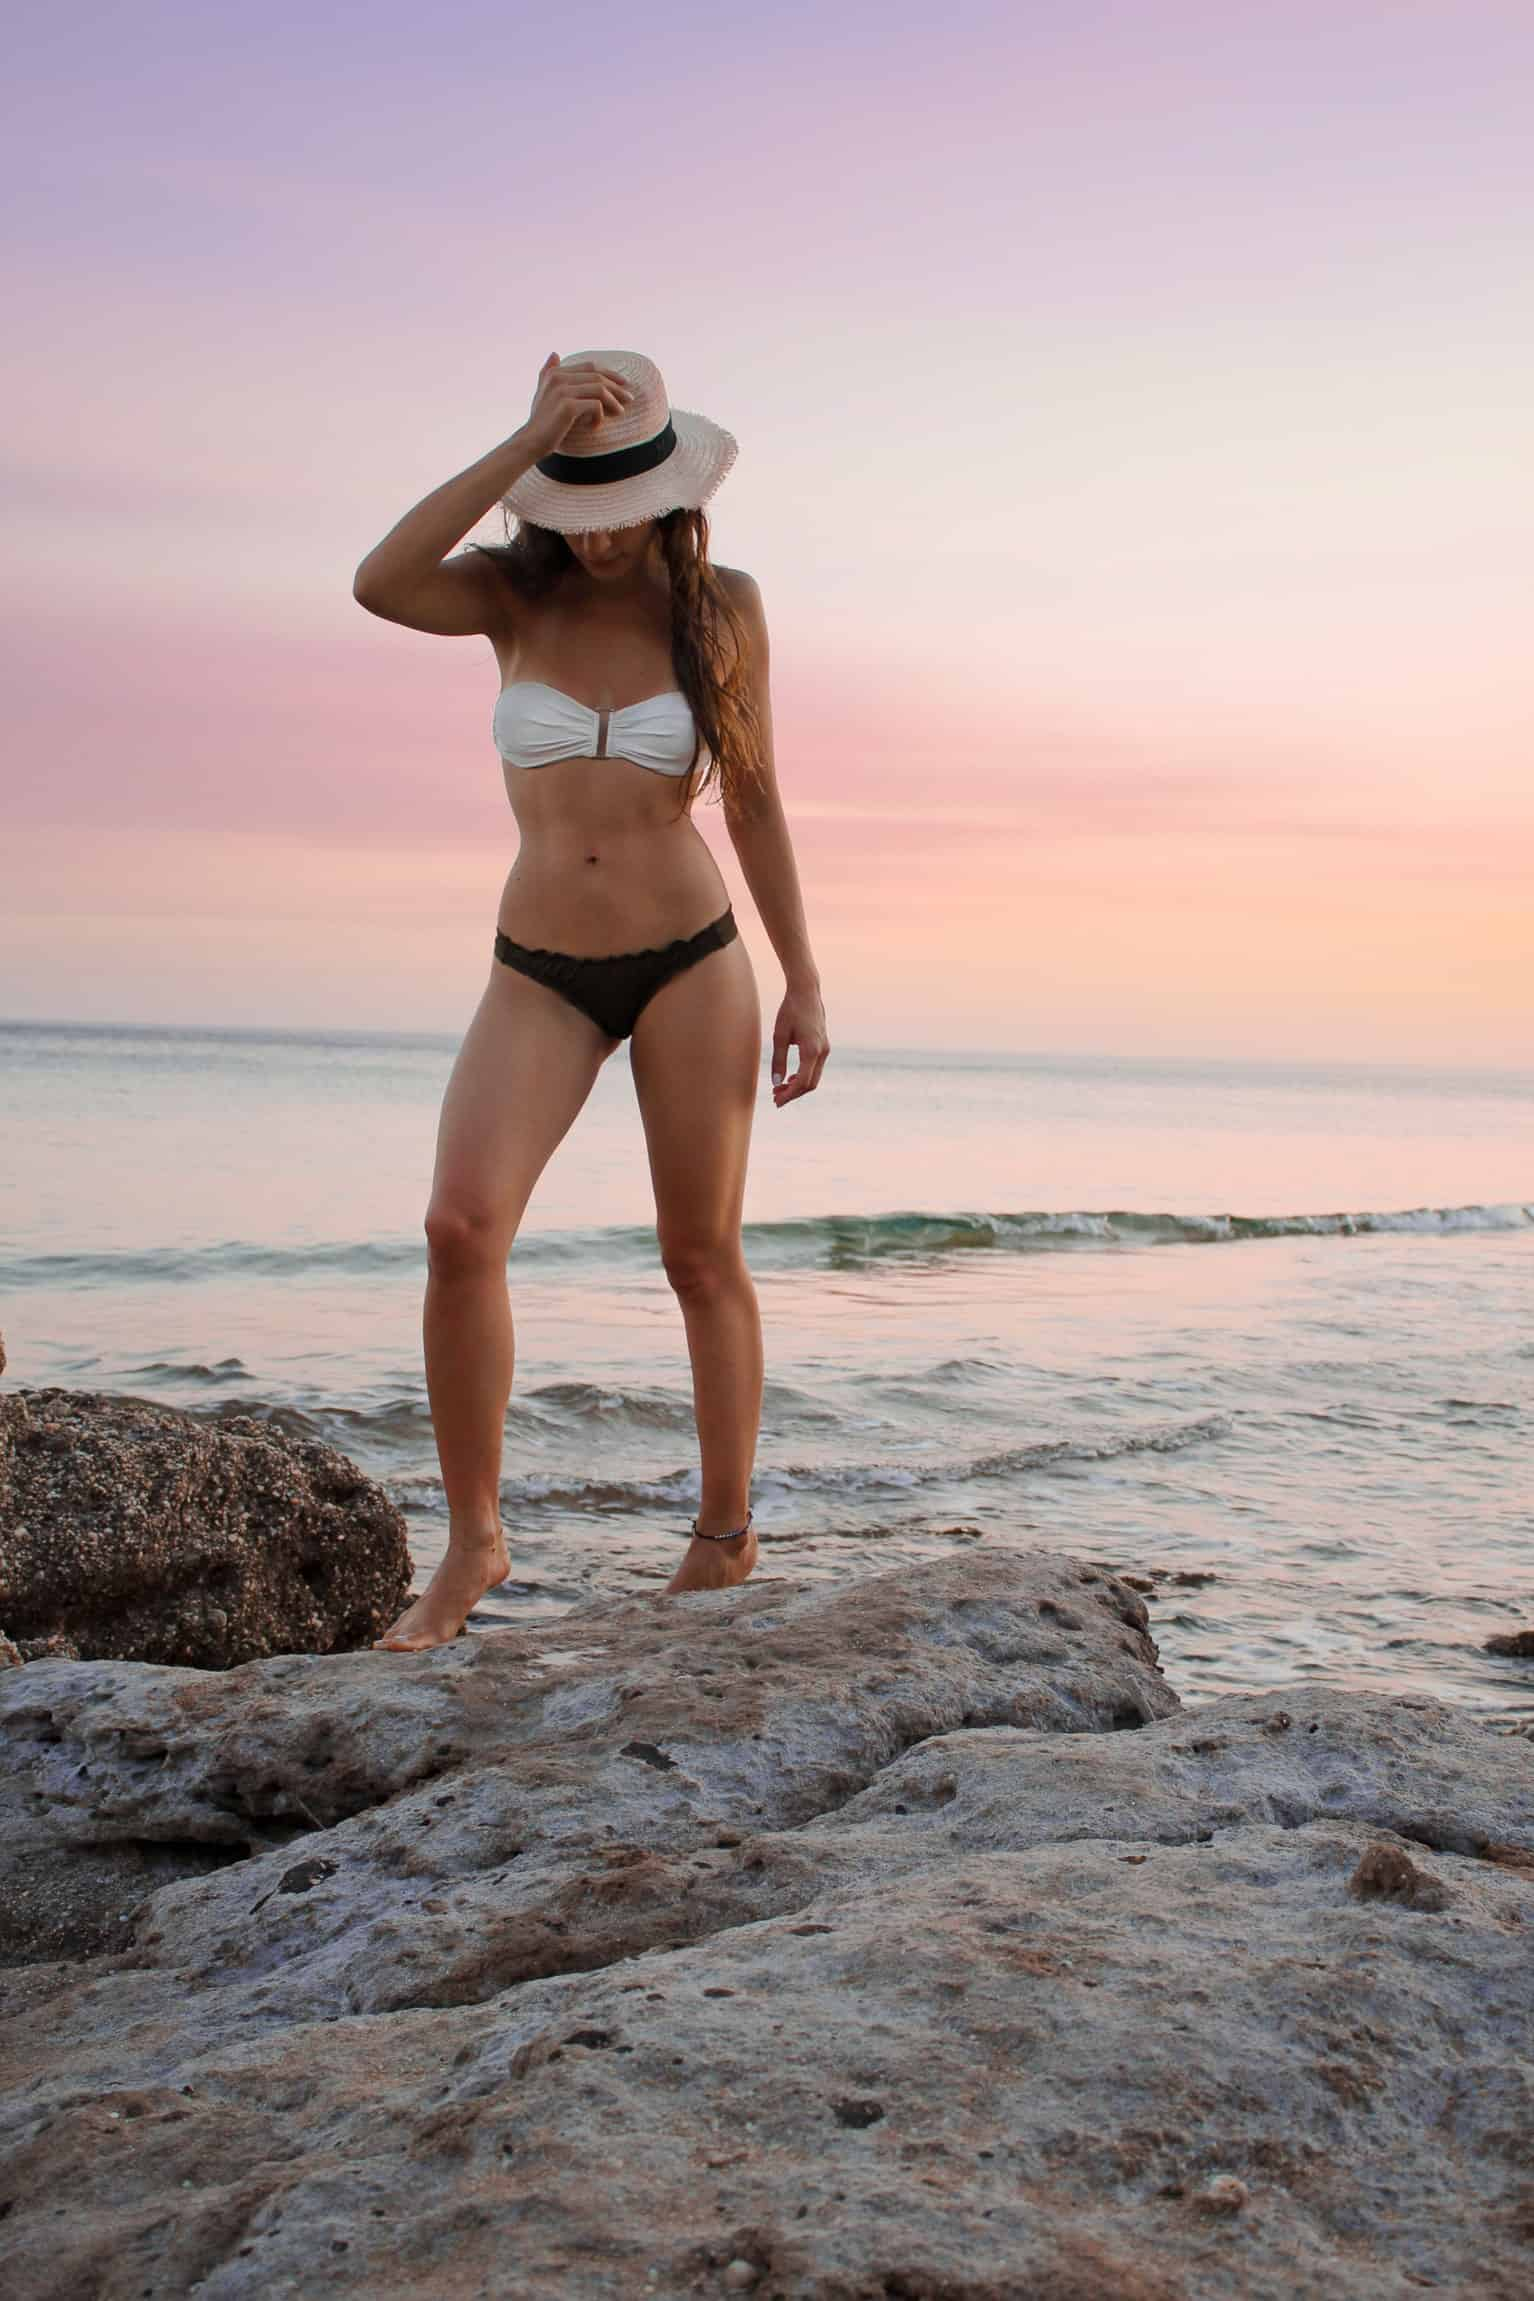 4 Abs Exercises For Women Who Want The Perfect Beach Body